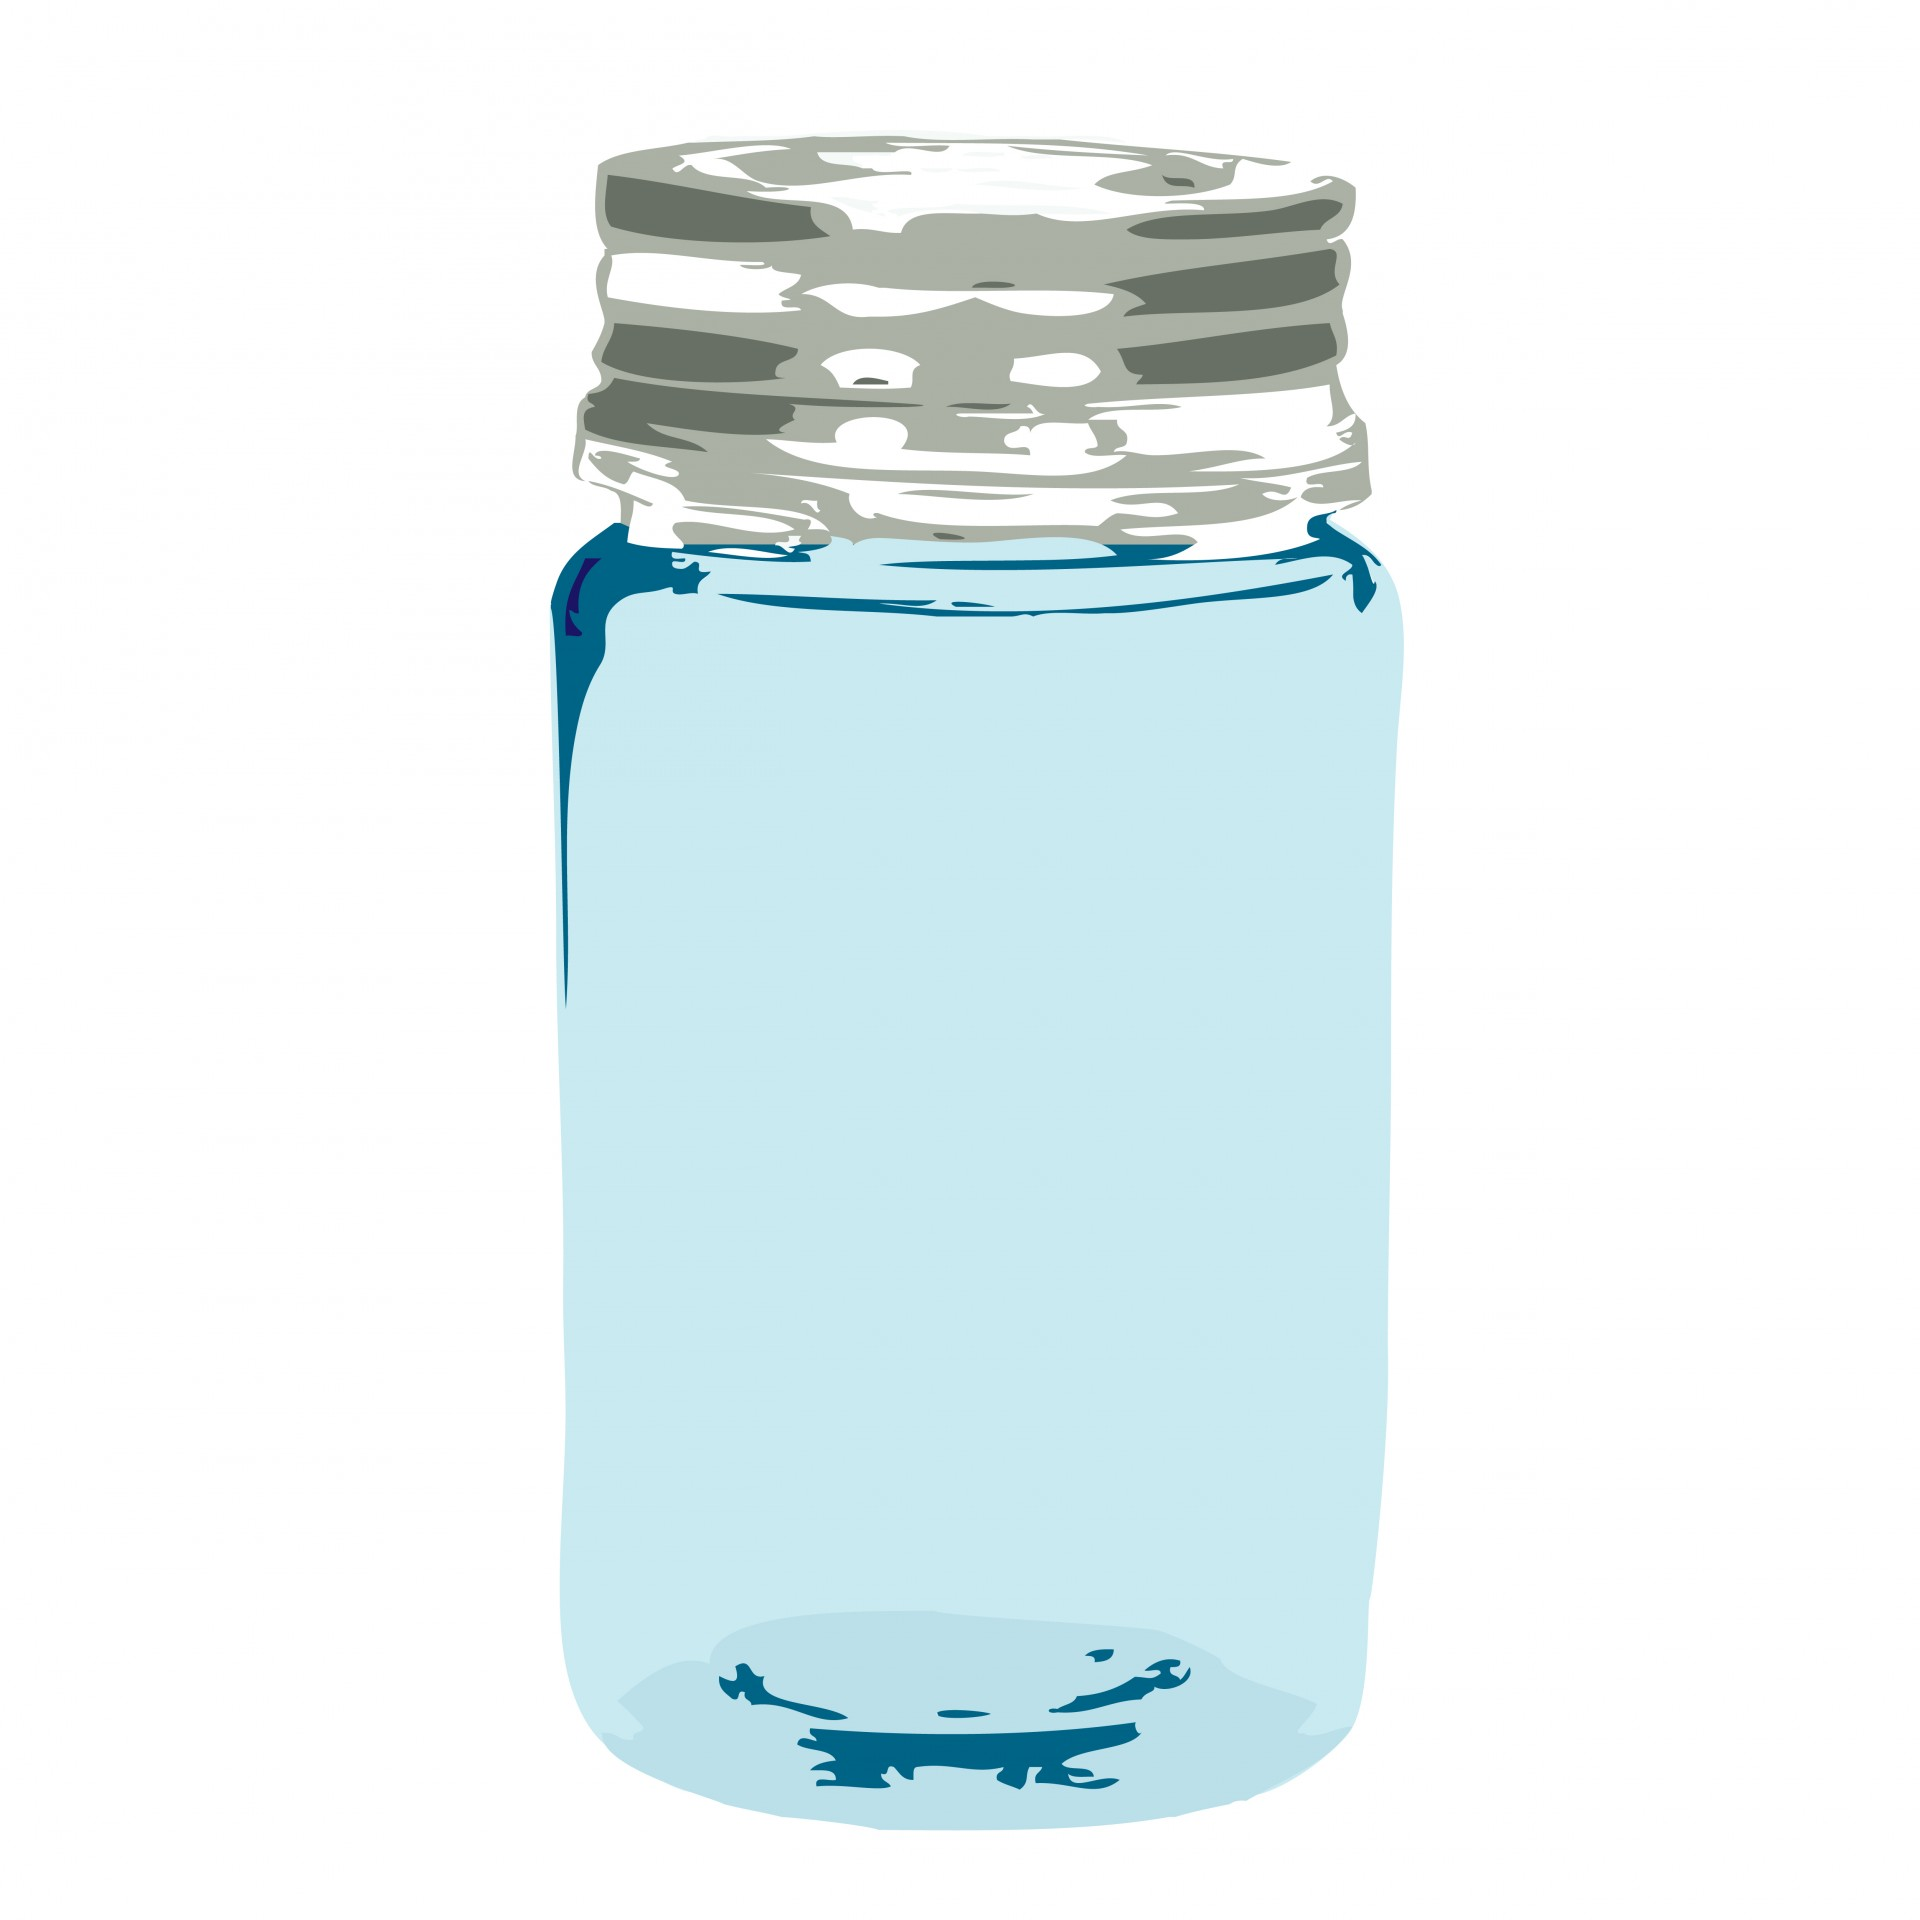 Blue mason jar clipart picture free Glass,jar,glass jar,mason glass jar,mason jar - free photo from ... picture free